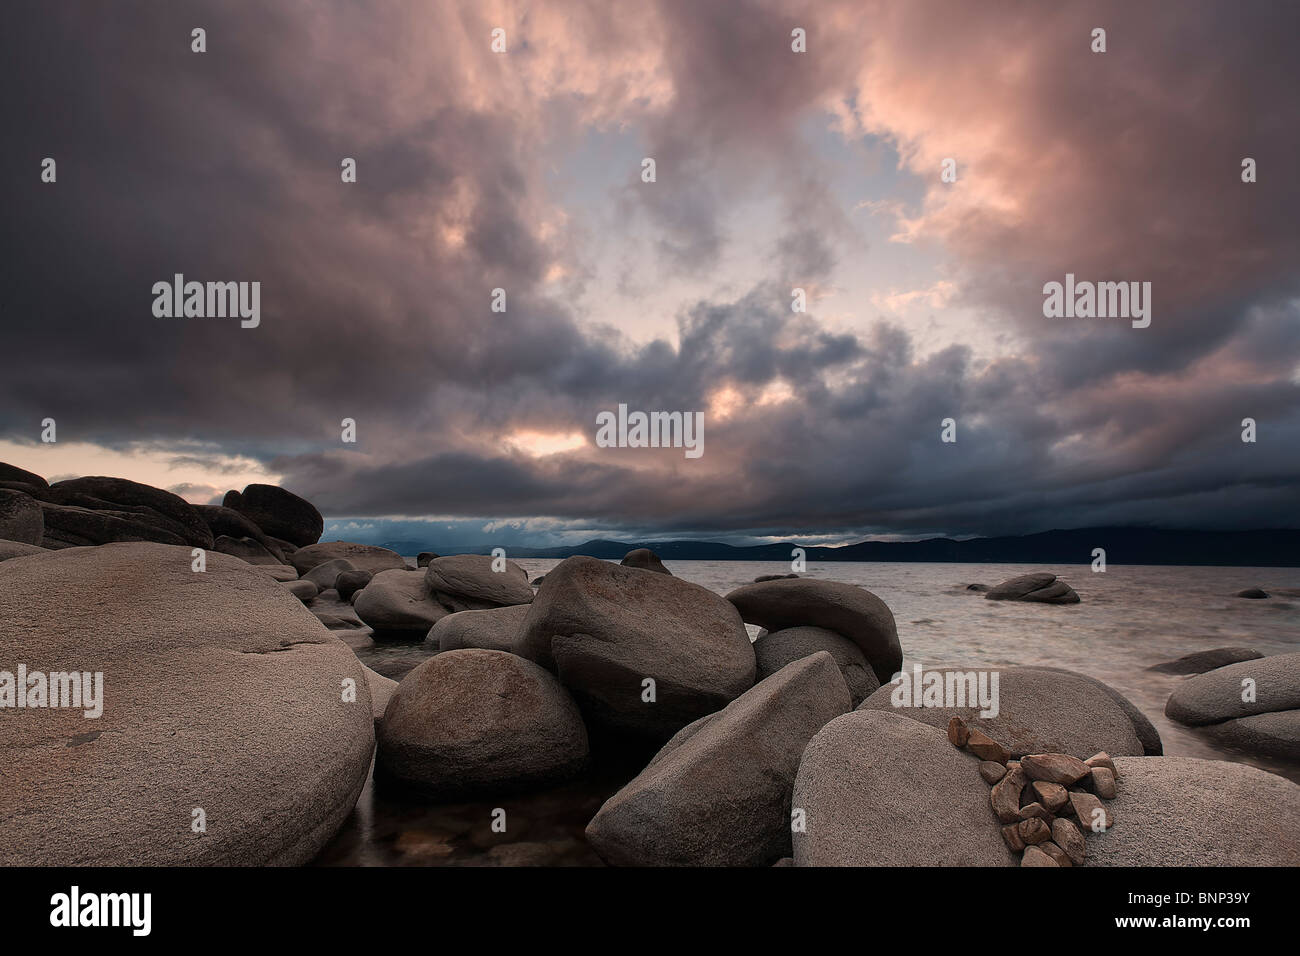 Storm clouds hover over Lake Tahoe near Incline Village, Nevada, USA. - Stock Image